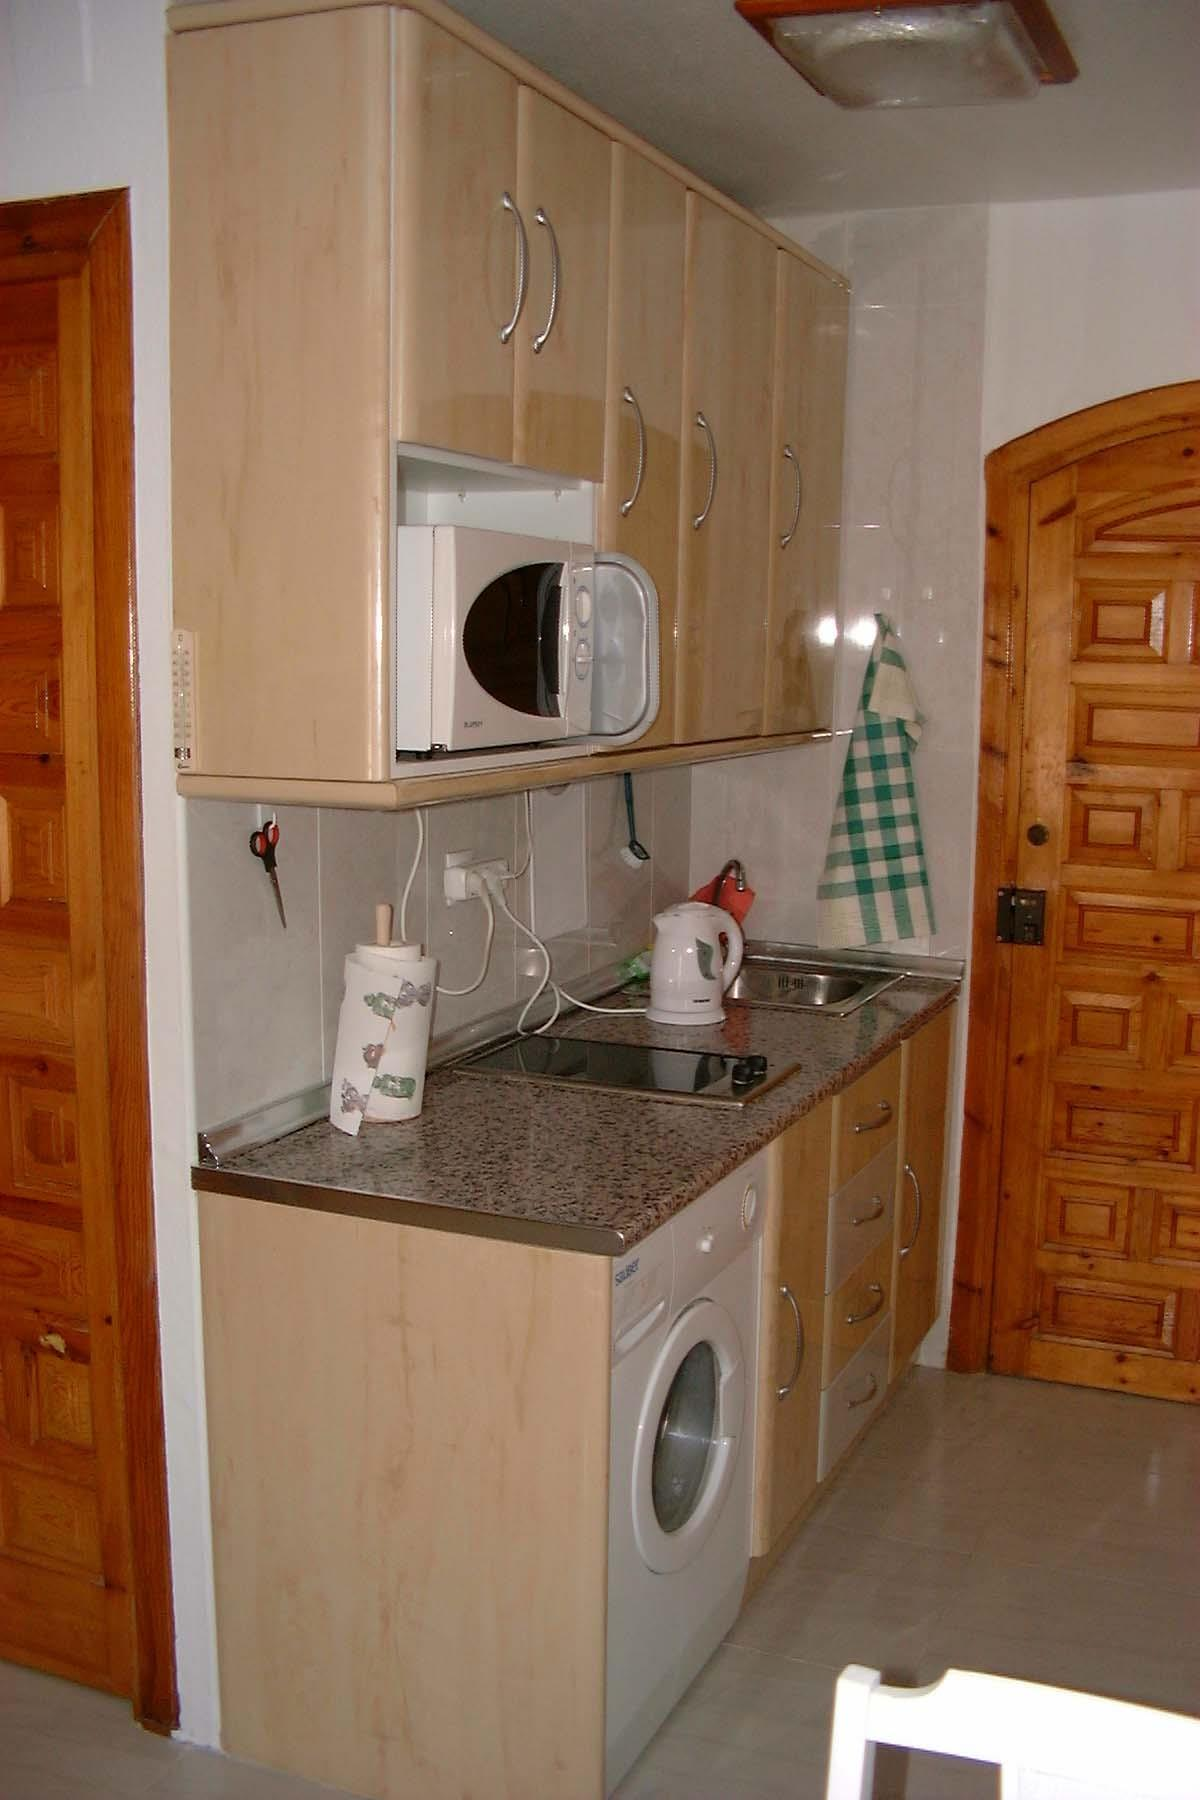 Kitchenette with micro and washing machine